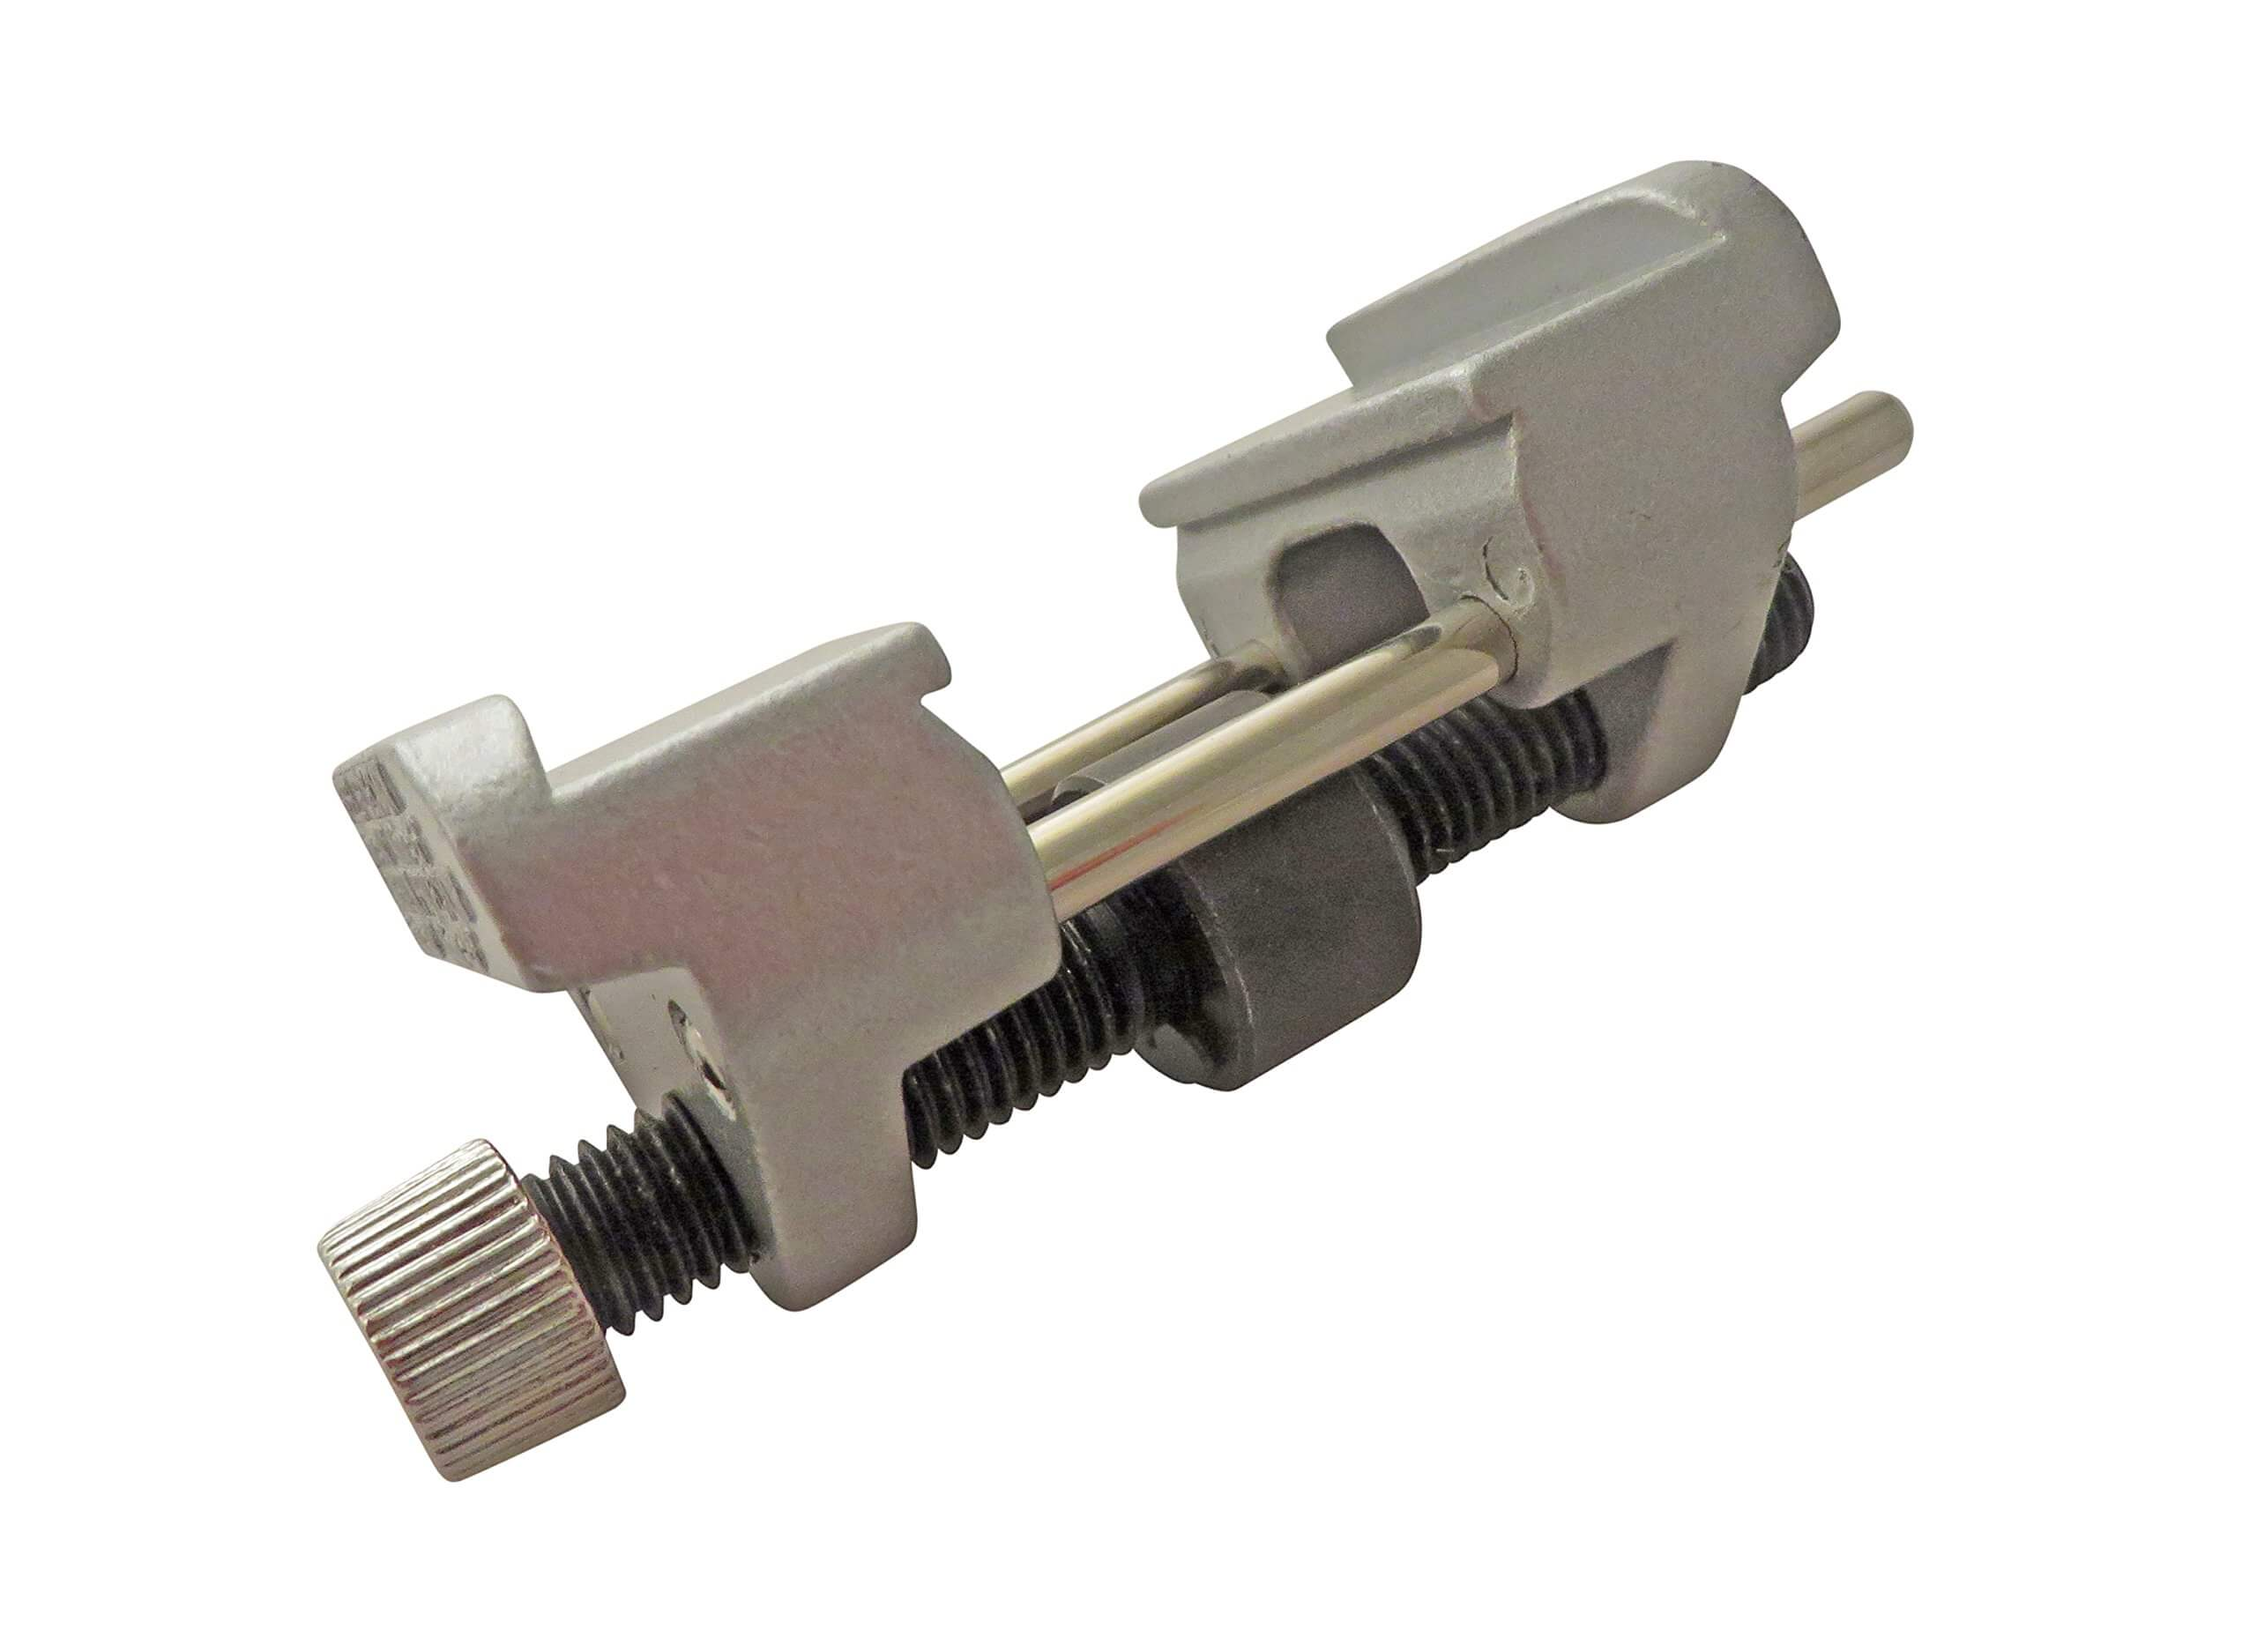 Taylor Toolworks Self-Centering Honing Guide